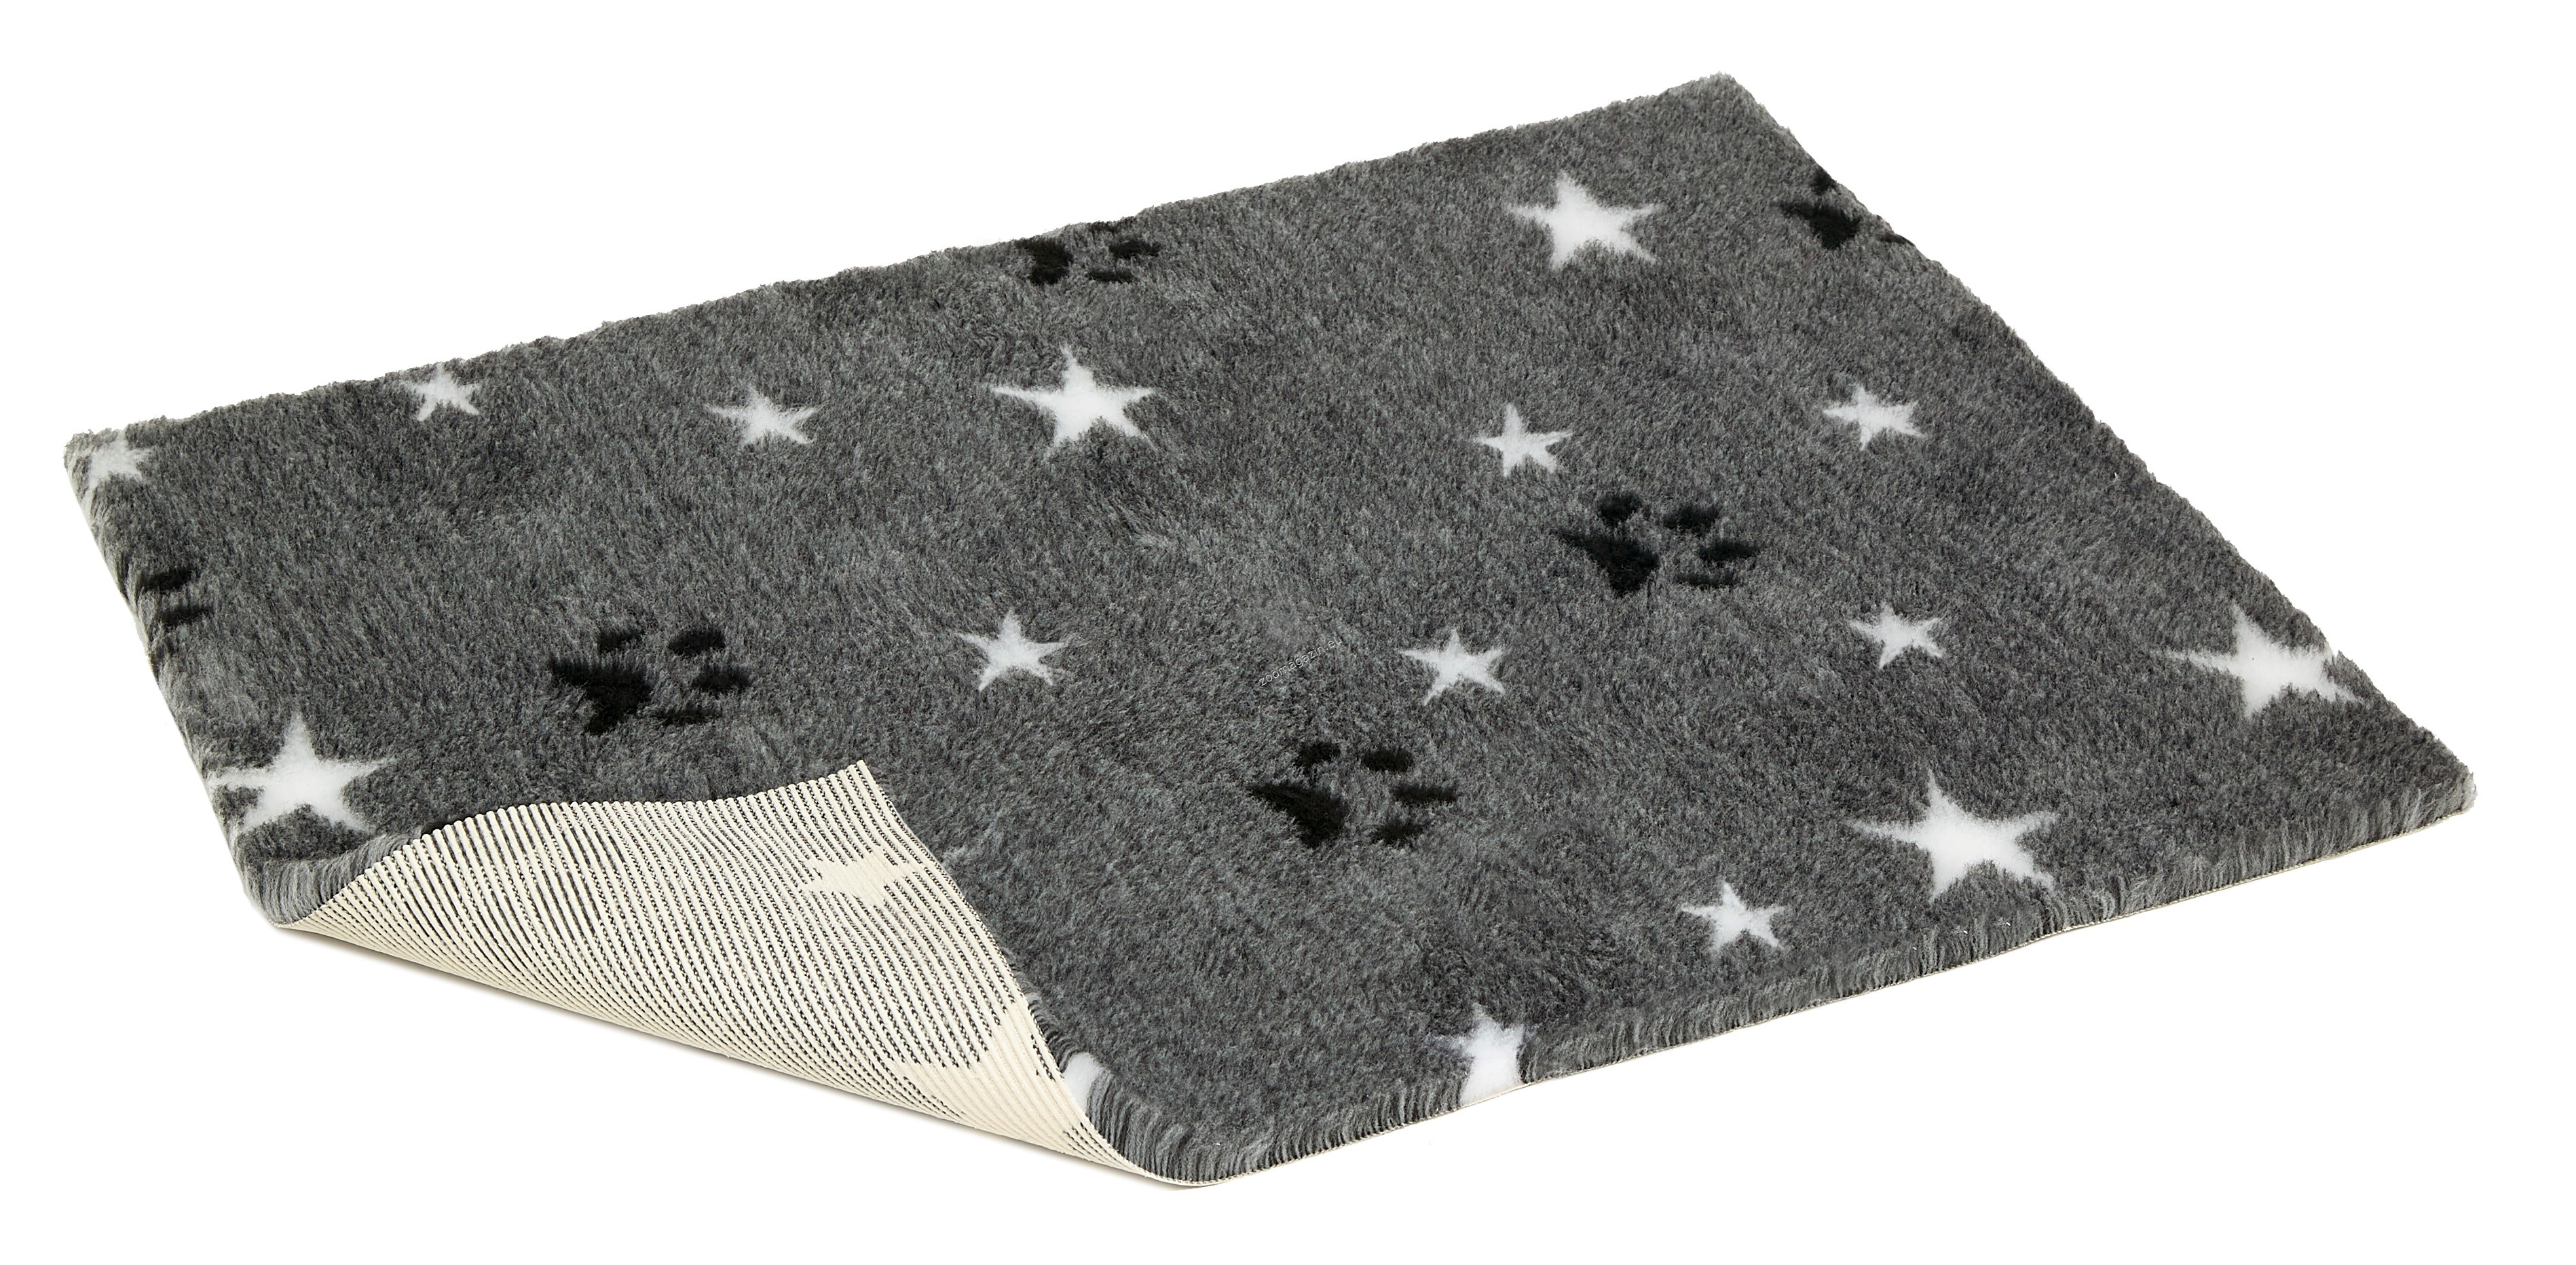 Vetbed Non-Slip Lime Grey with Stars and Paws - мека постелка със слой против пързаляне 80 / 75 см.